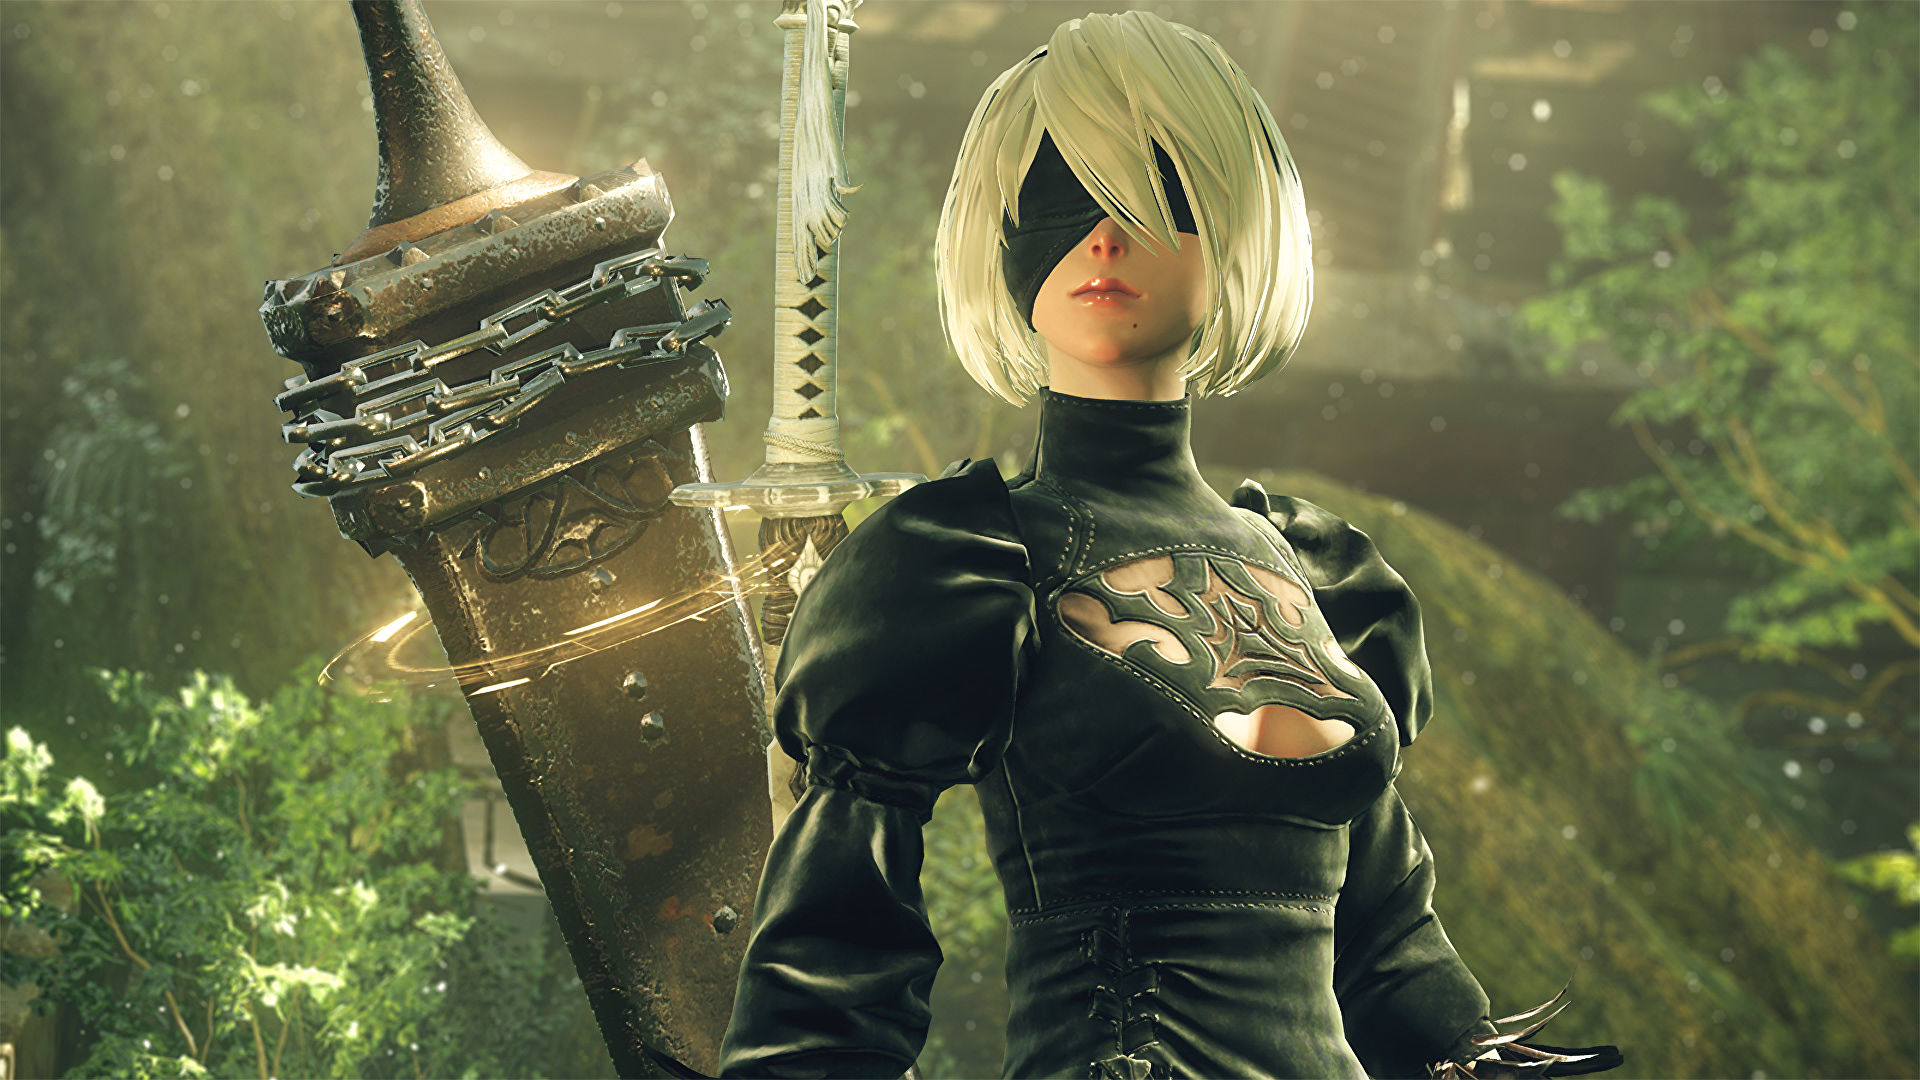 Nier: Automata is finally getting a patch on Steam